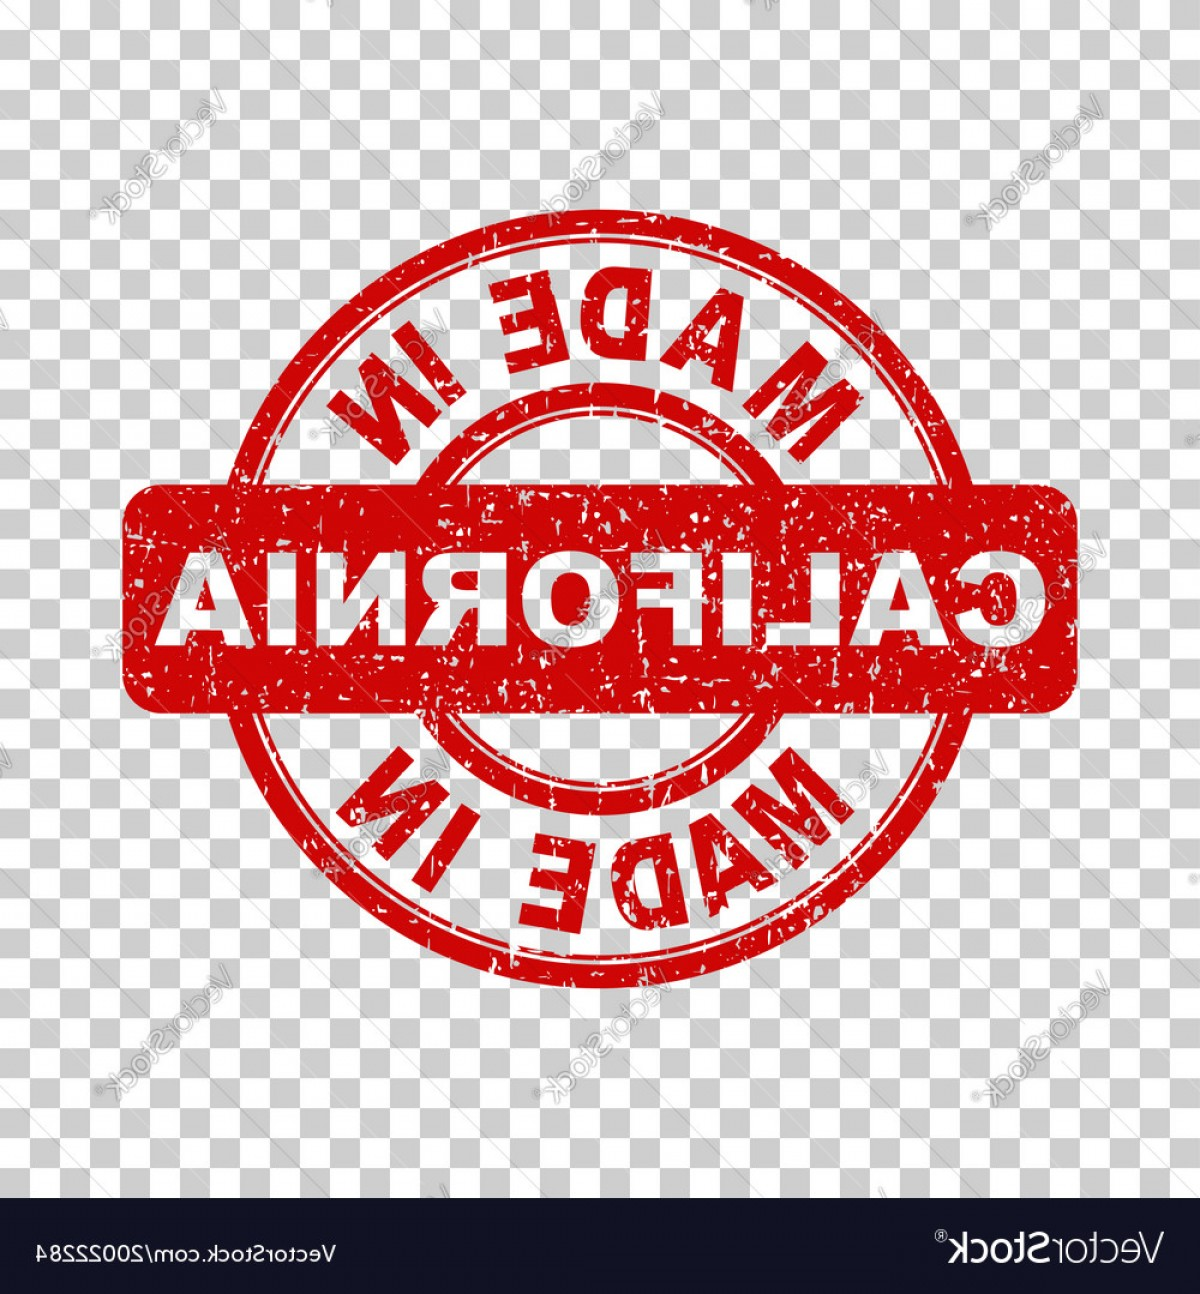 California Seal Vector EPS: Made In California Red Stamp On Isolated Vector